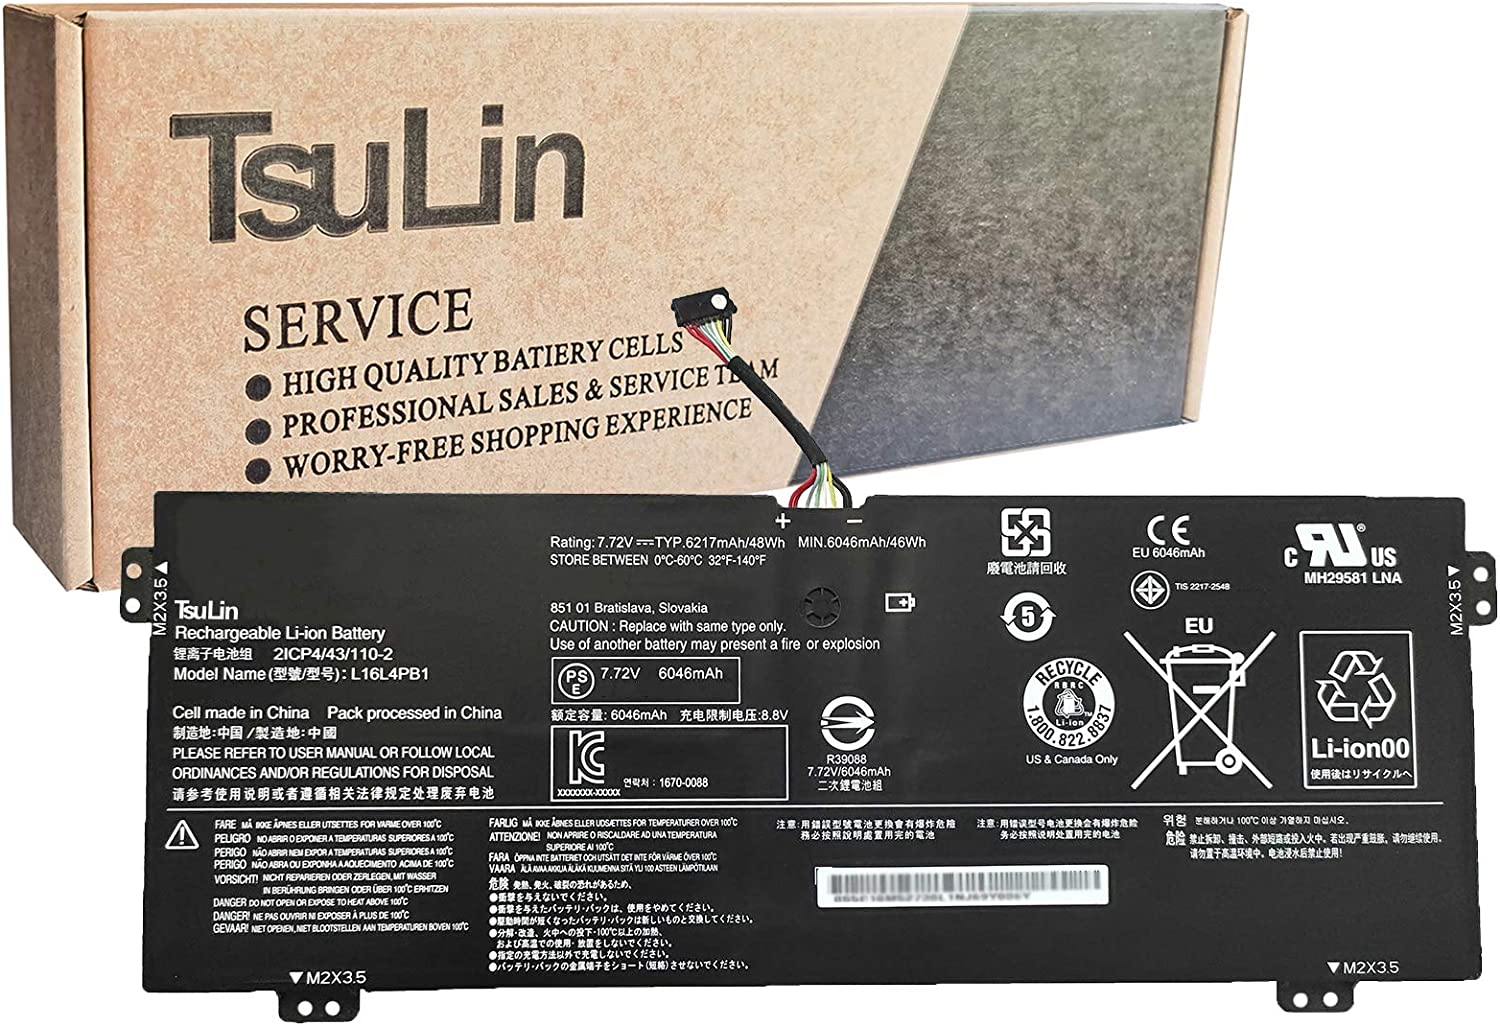 TsuLin L16L4PB1 Laptop Battery Compatible with Lenovo Yoga 720-13IKB 730-13IKB 730-13IWL Series Notebook L16C4PB1 L16M4PB1 5B10M52738 5B10M52739 5B10M52740 7.72V 48Wh 6217mAh